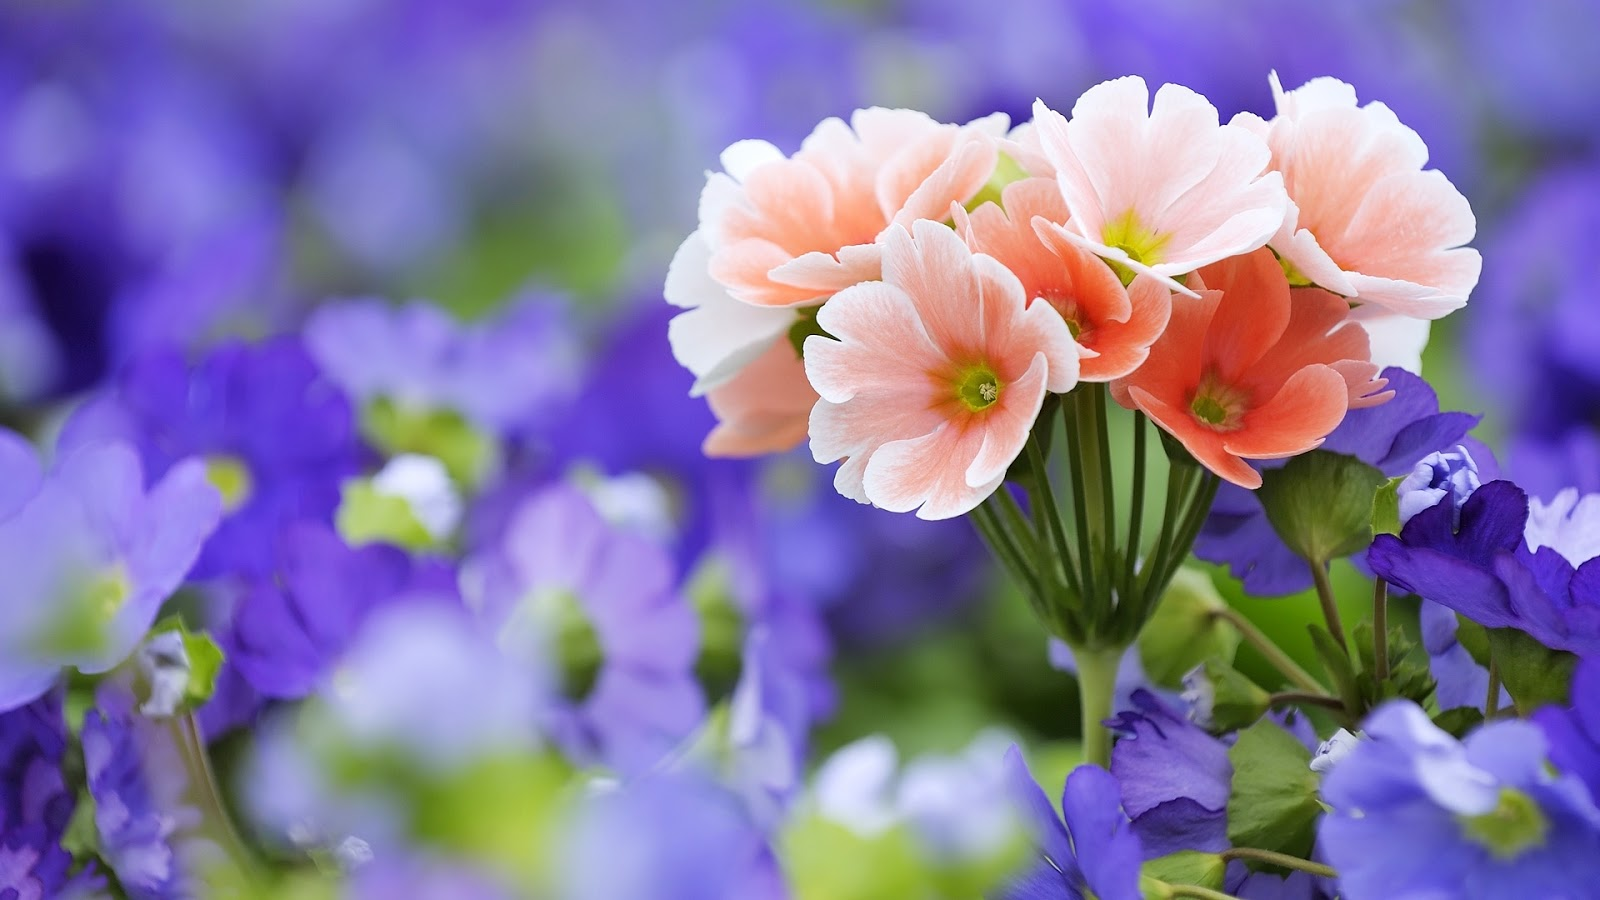 Pretty Flowers Wallpaper